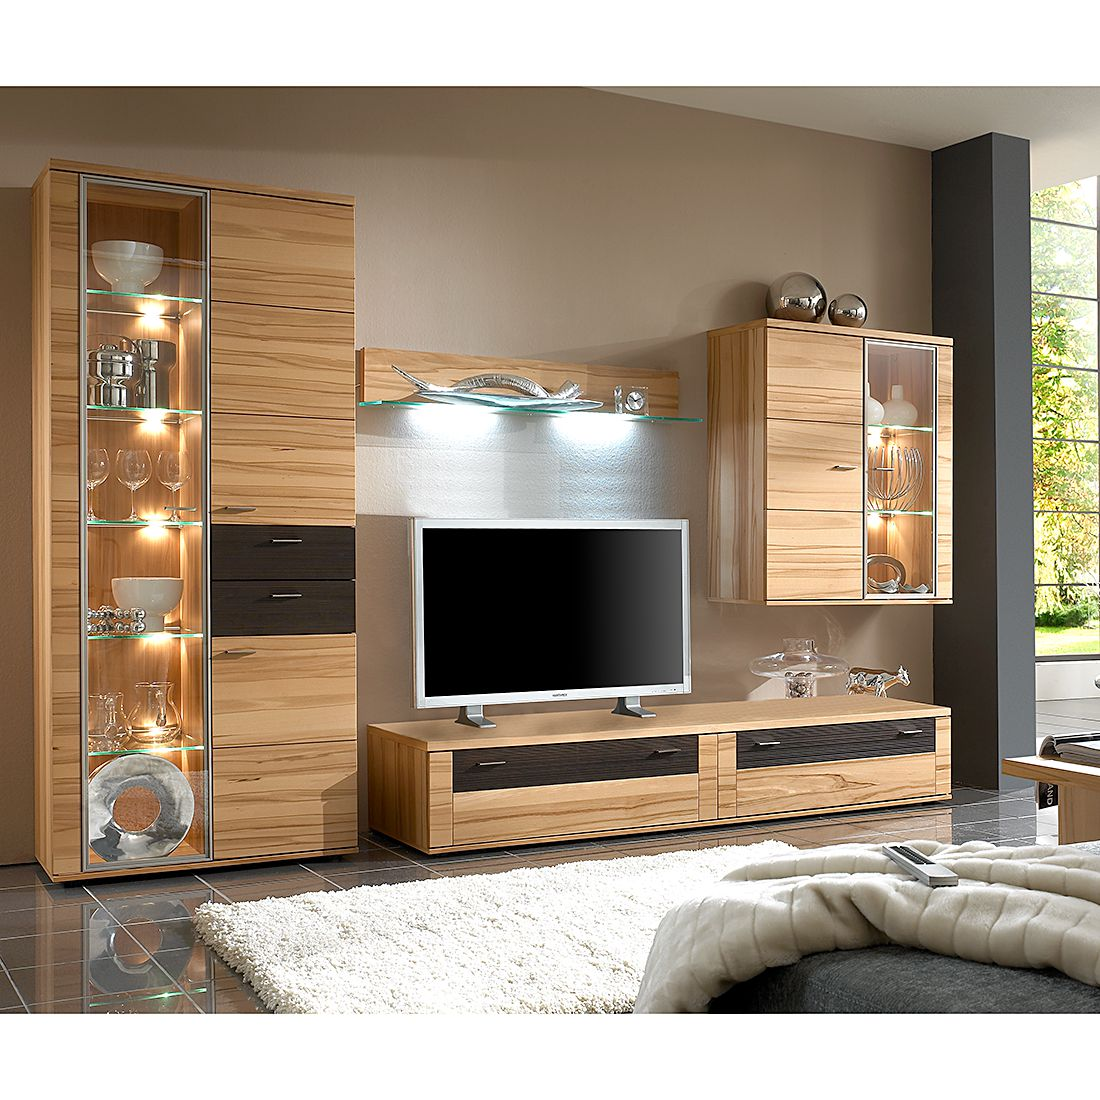 wohnwand ohne tv latest wohnwand ohne tv element images with wohnwand ohne tv amazing wohnwand. Black Bedroom Furniture Sets. Home Design Ideas